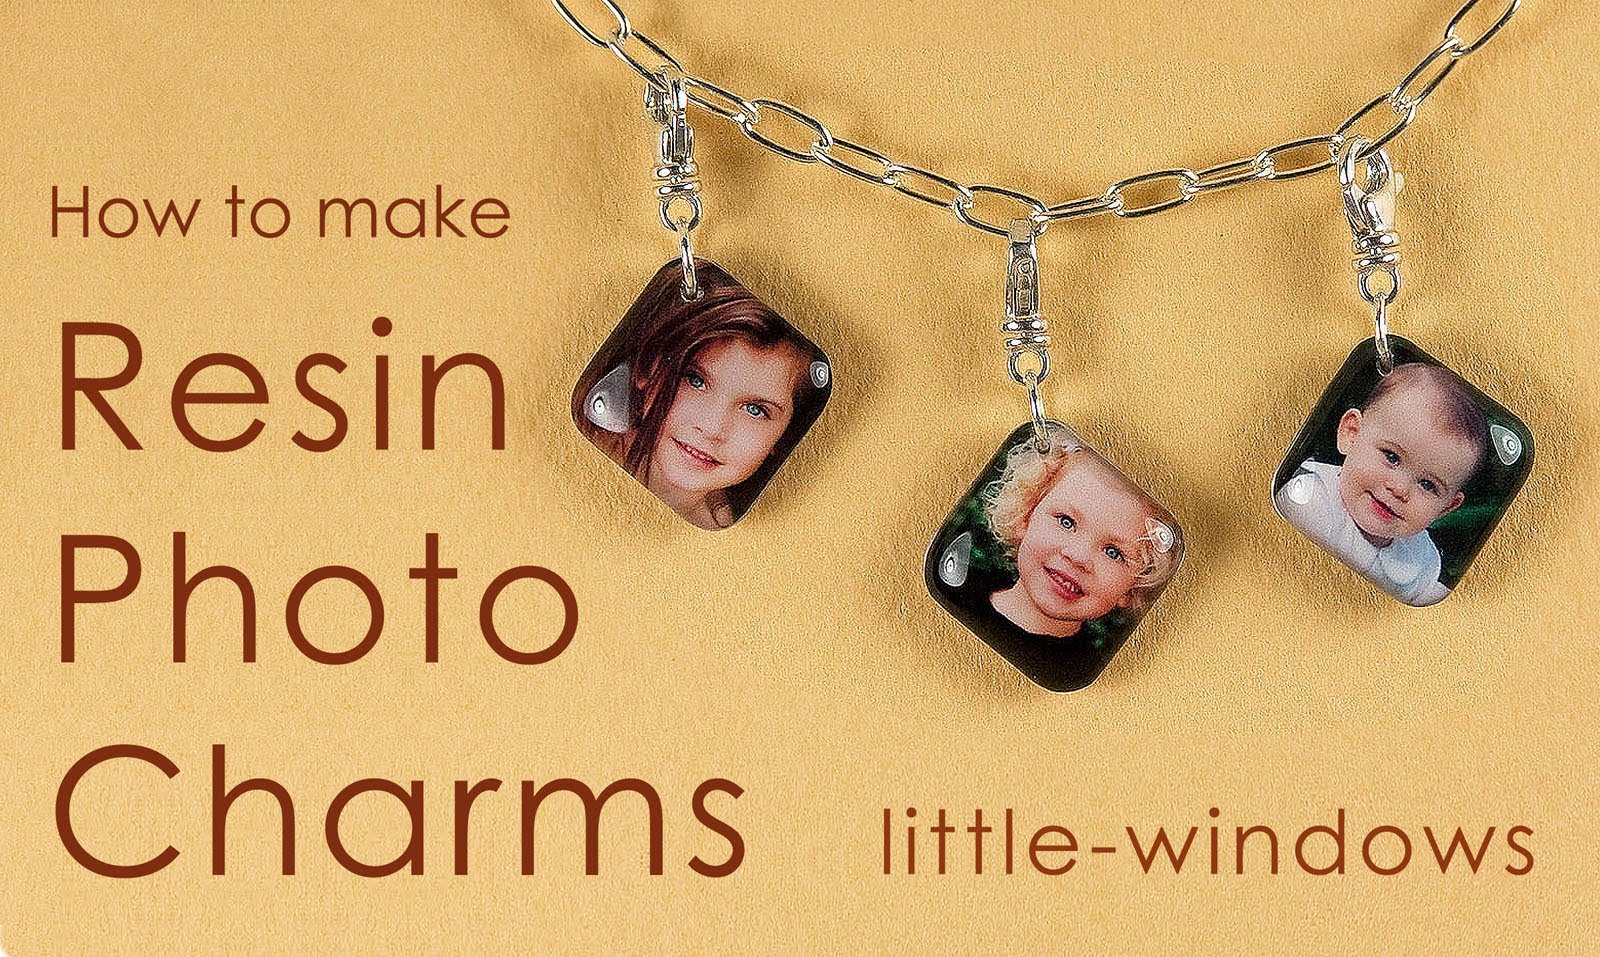 Diy resin photo charms